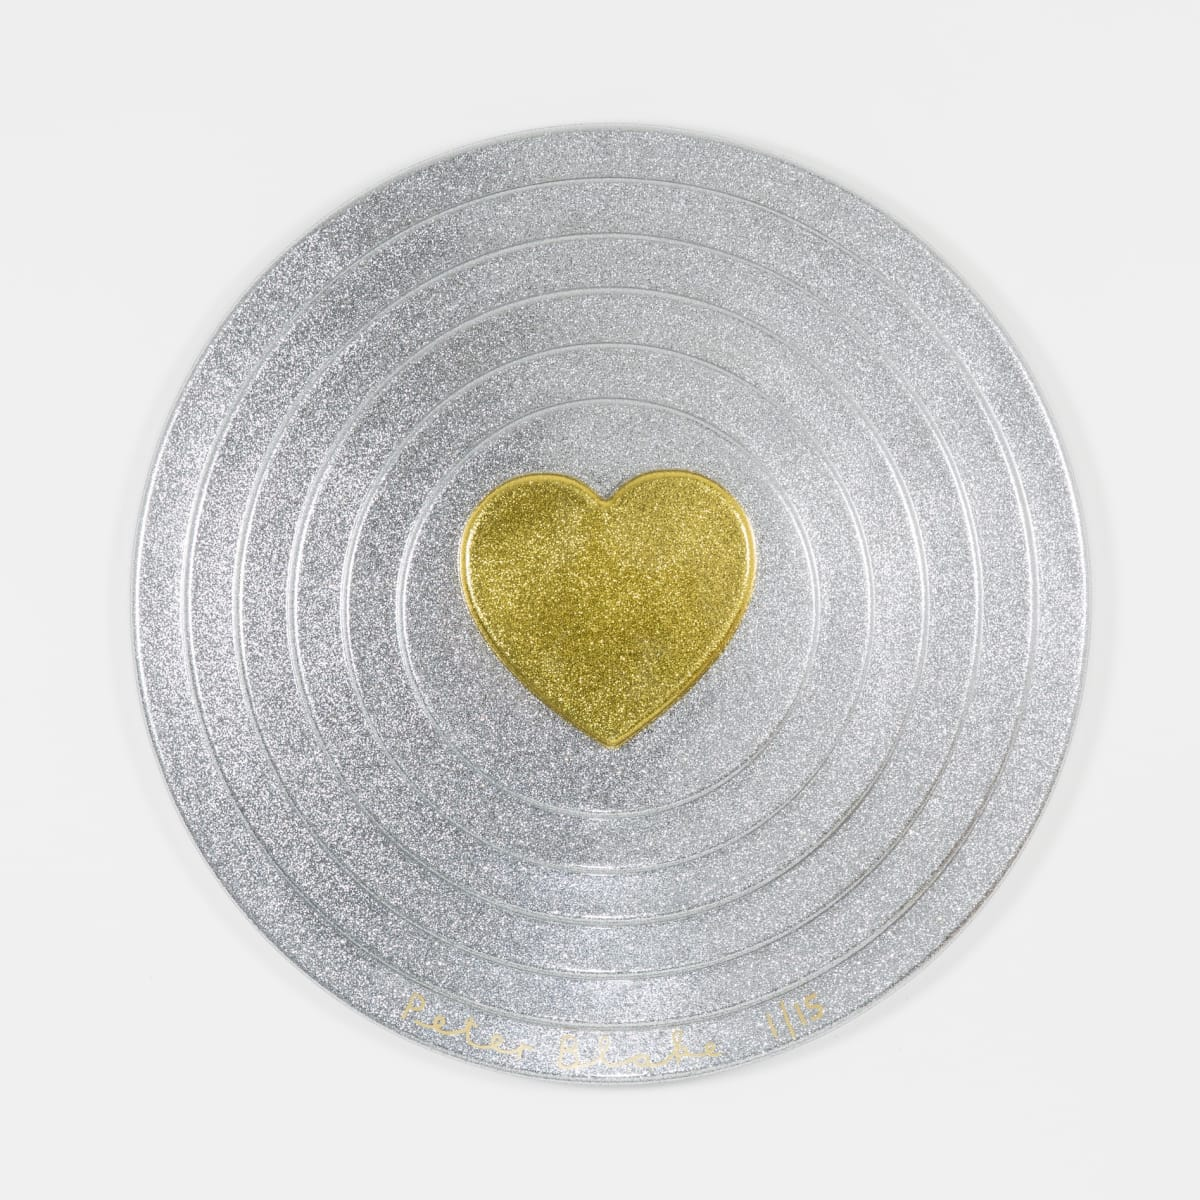 Peter Blake Gold heart on silver Target (metal flake), 2017 Vacuum formed plastic, paint 69 x 69 x 10 cm Edition of 15 Signed and numbered